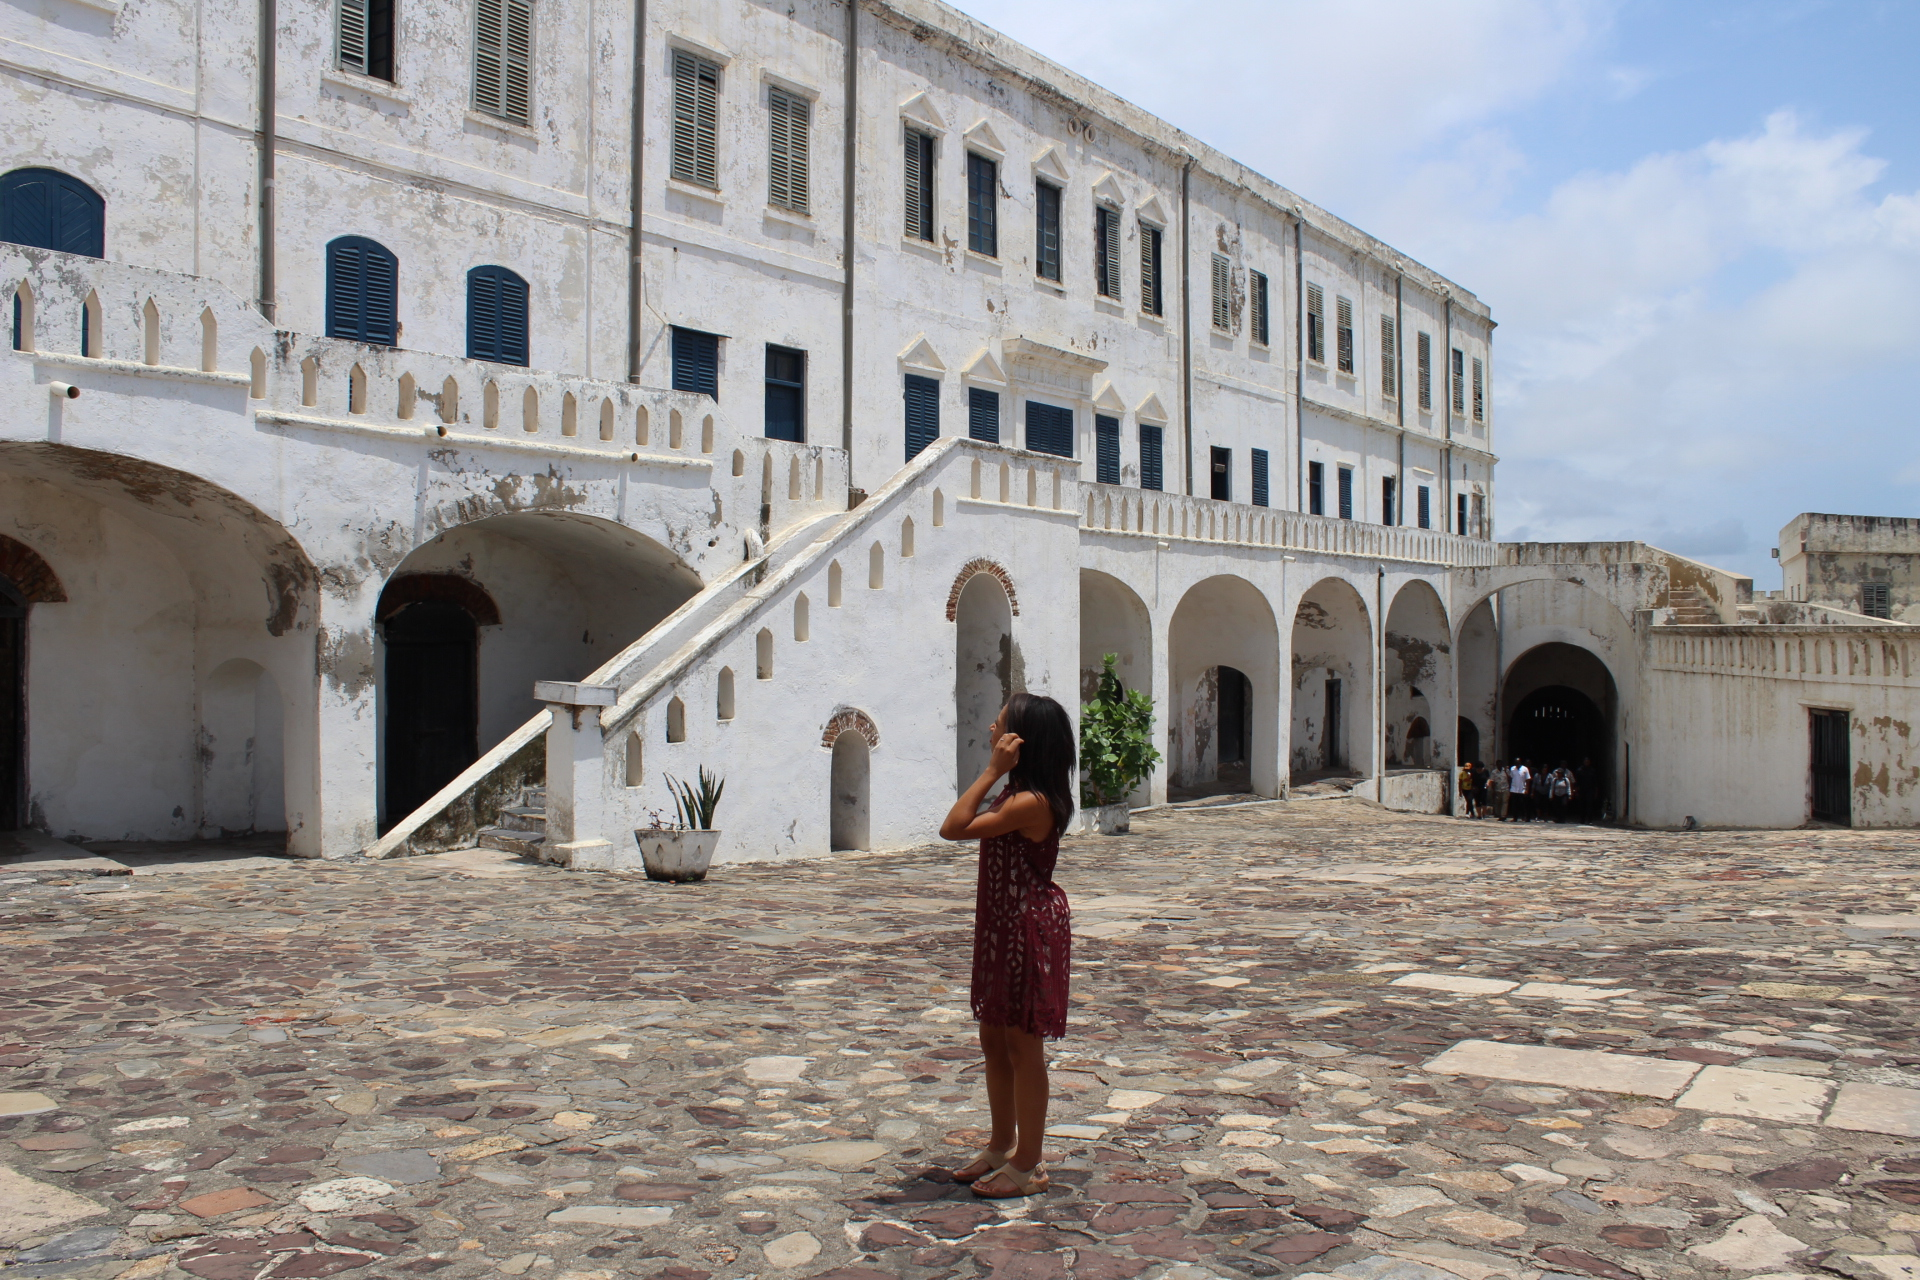 Reflecting on what I learned at the Cape Coast Castle